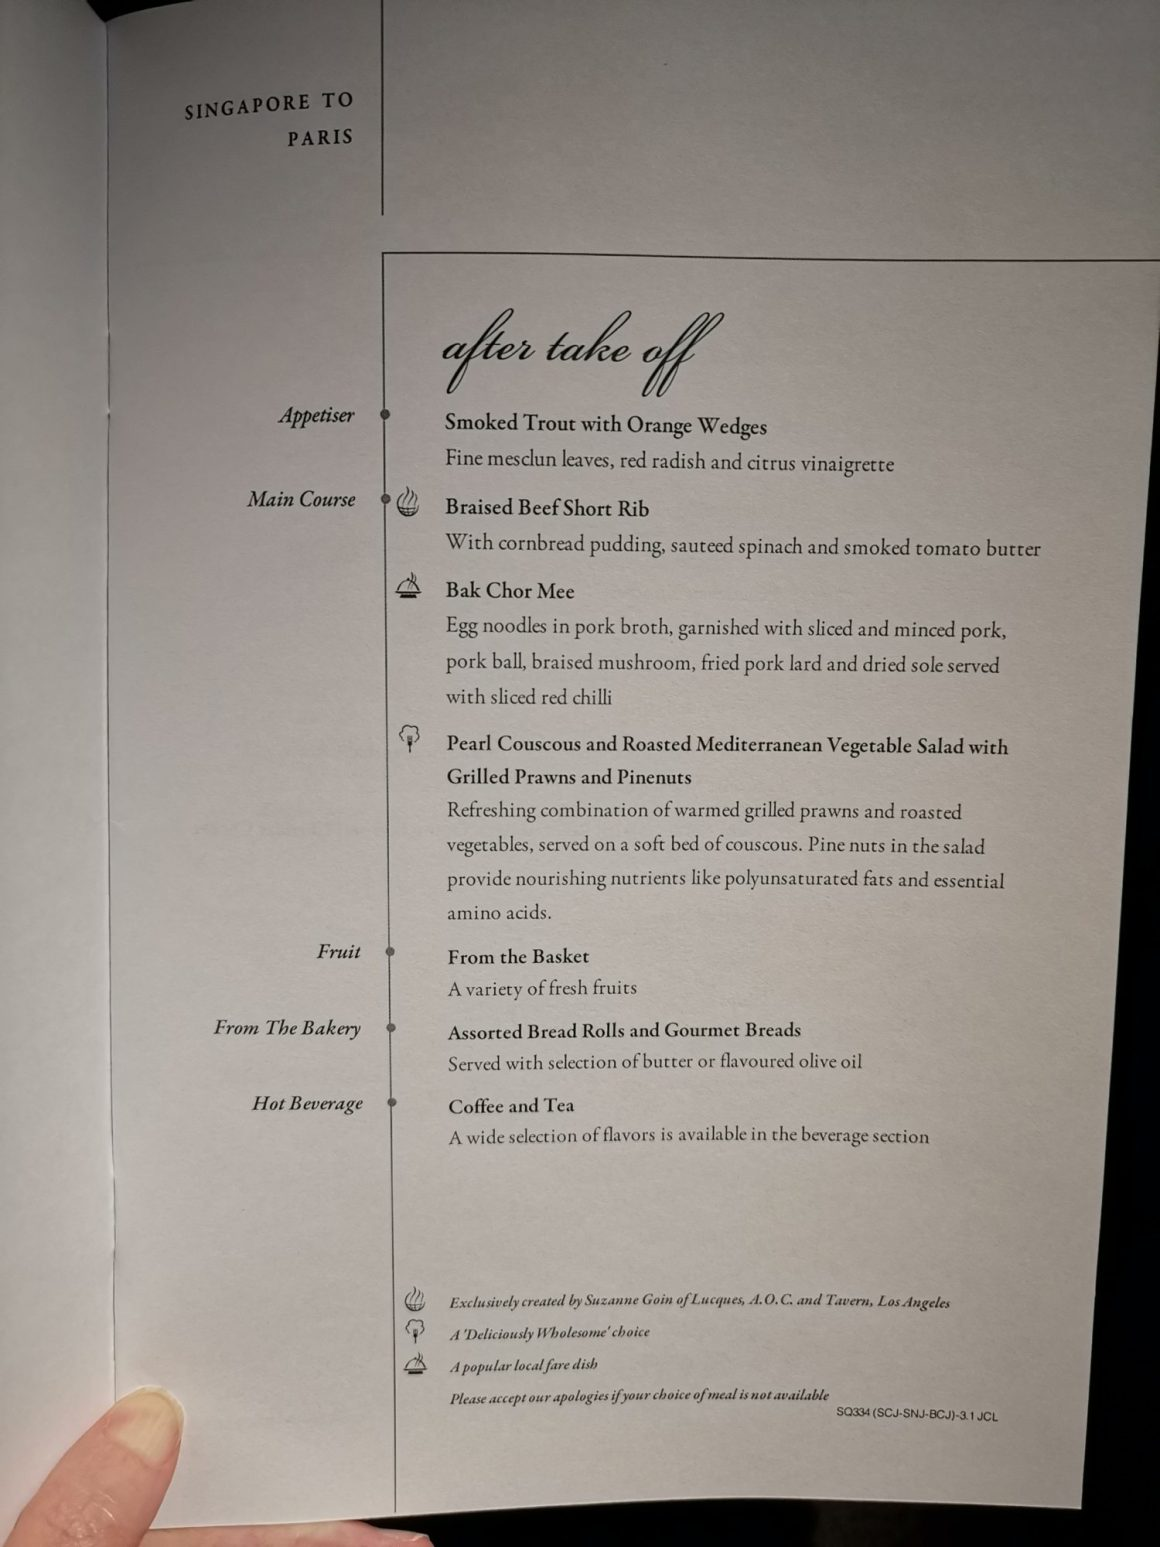 Singapore Airlines Business Class SQ334 From Singapore To Paris – After Take-off Menu